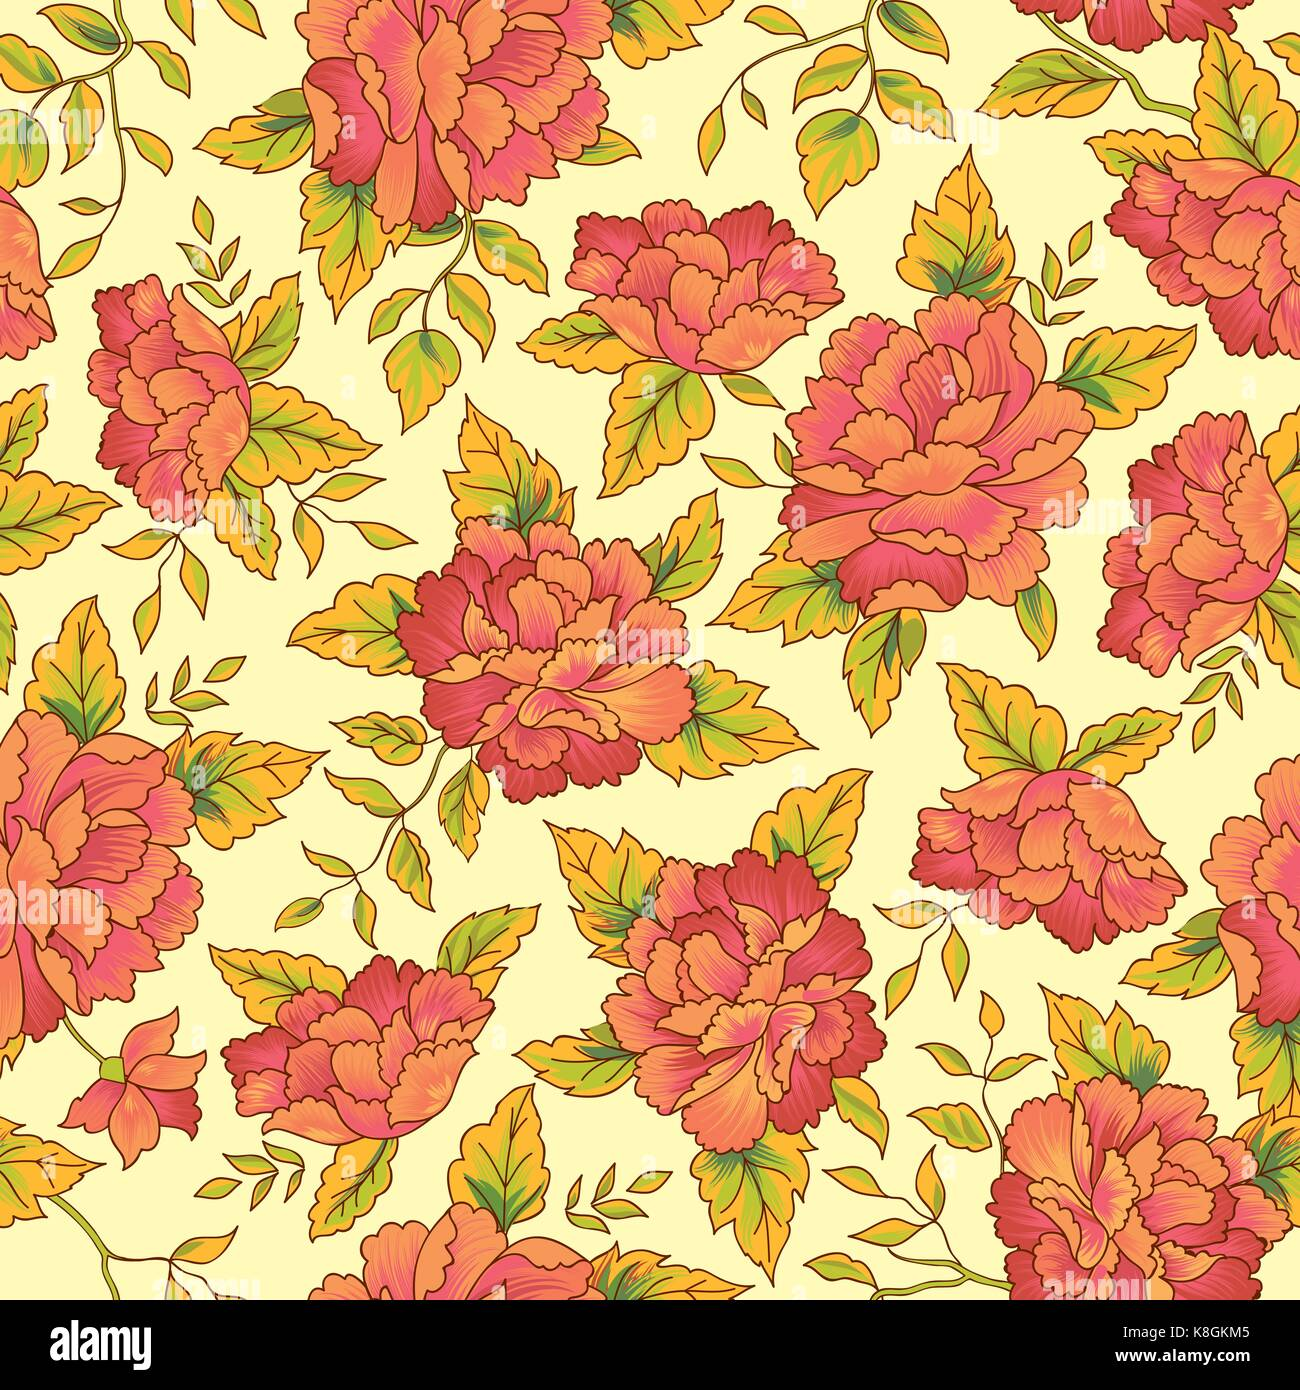 c8b0dd248 Floral pattern in chinese embroidery style. Flower seamless background.  Flourish ornamental garden - Stock